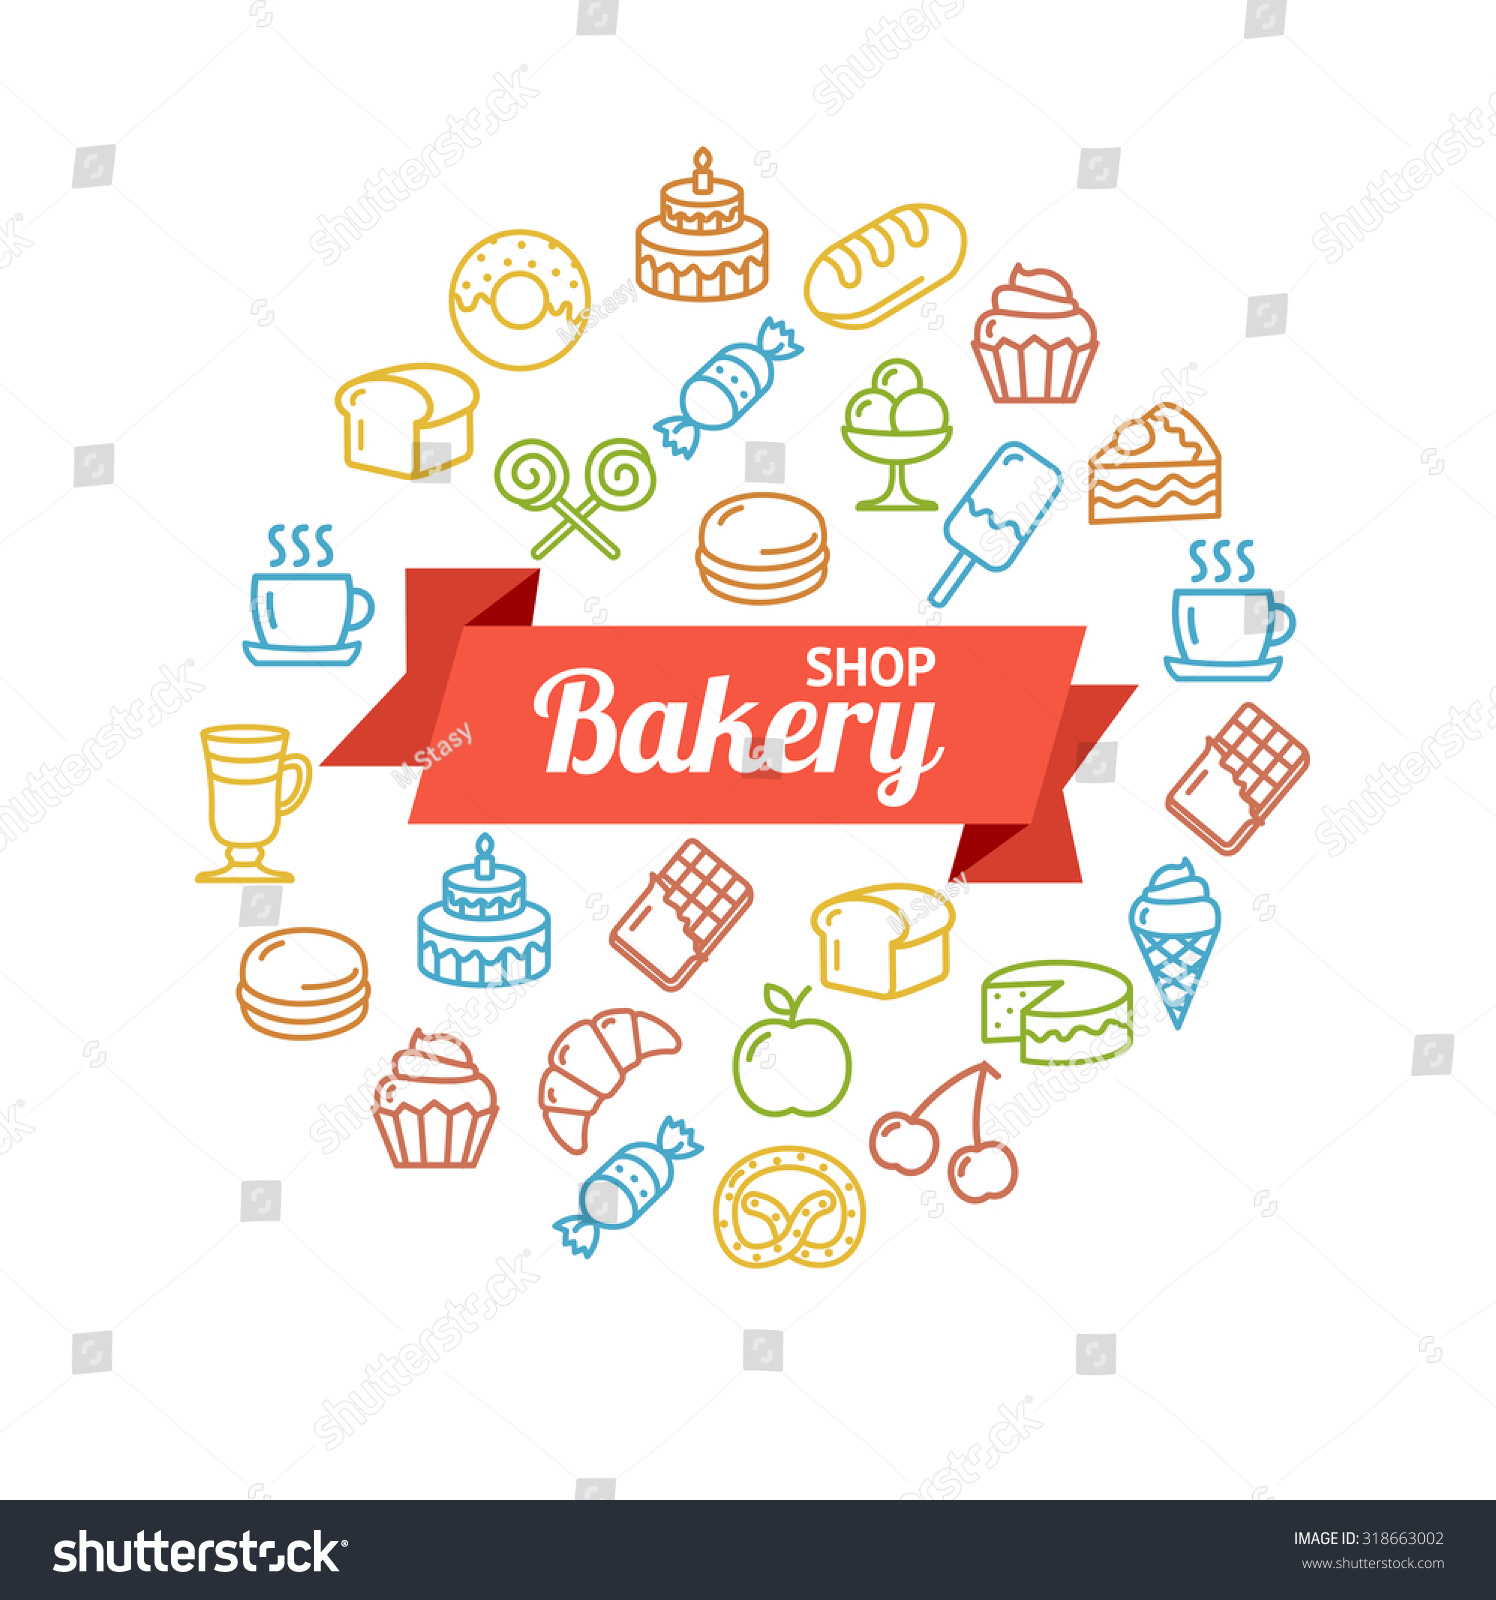 Bakery Shop Colorful Concept Outline with Space for Header Vector illustration